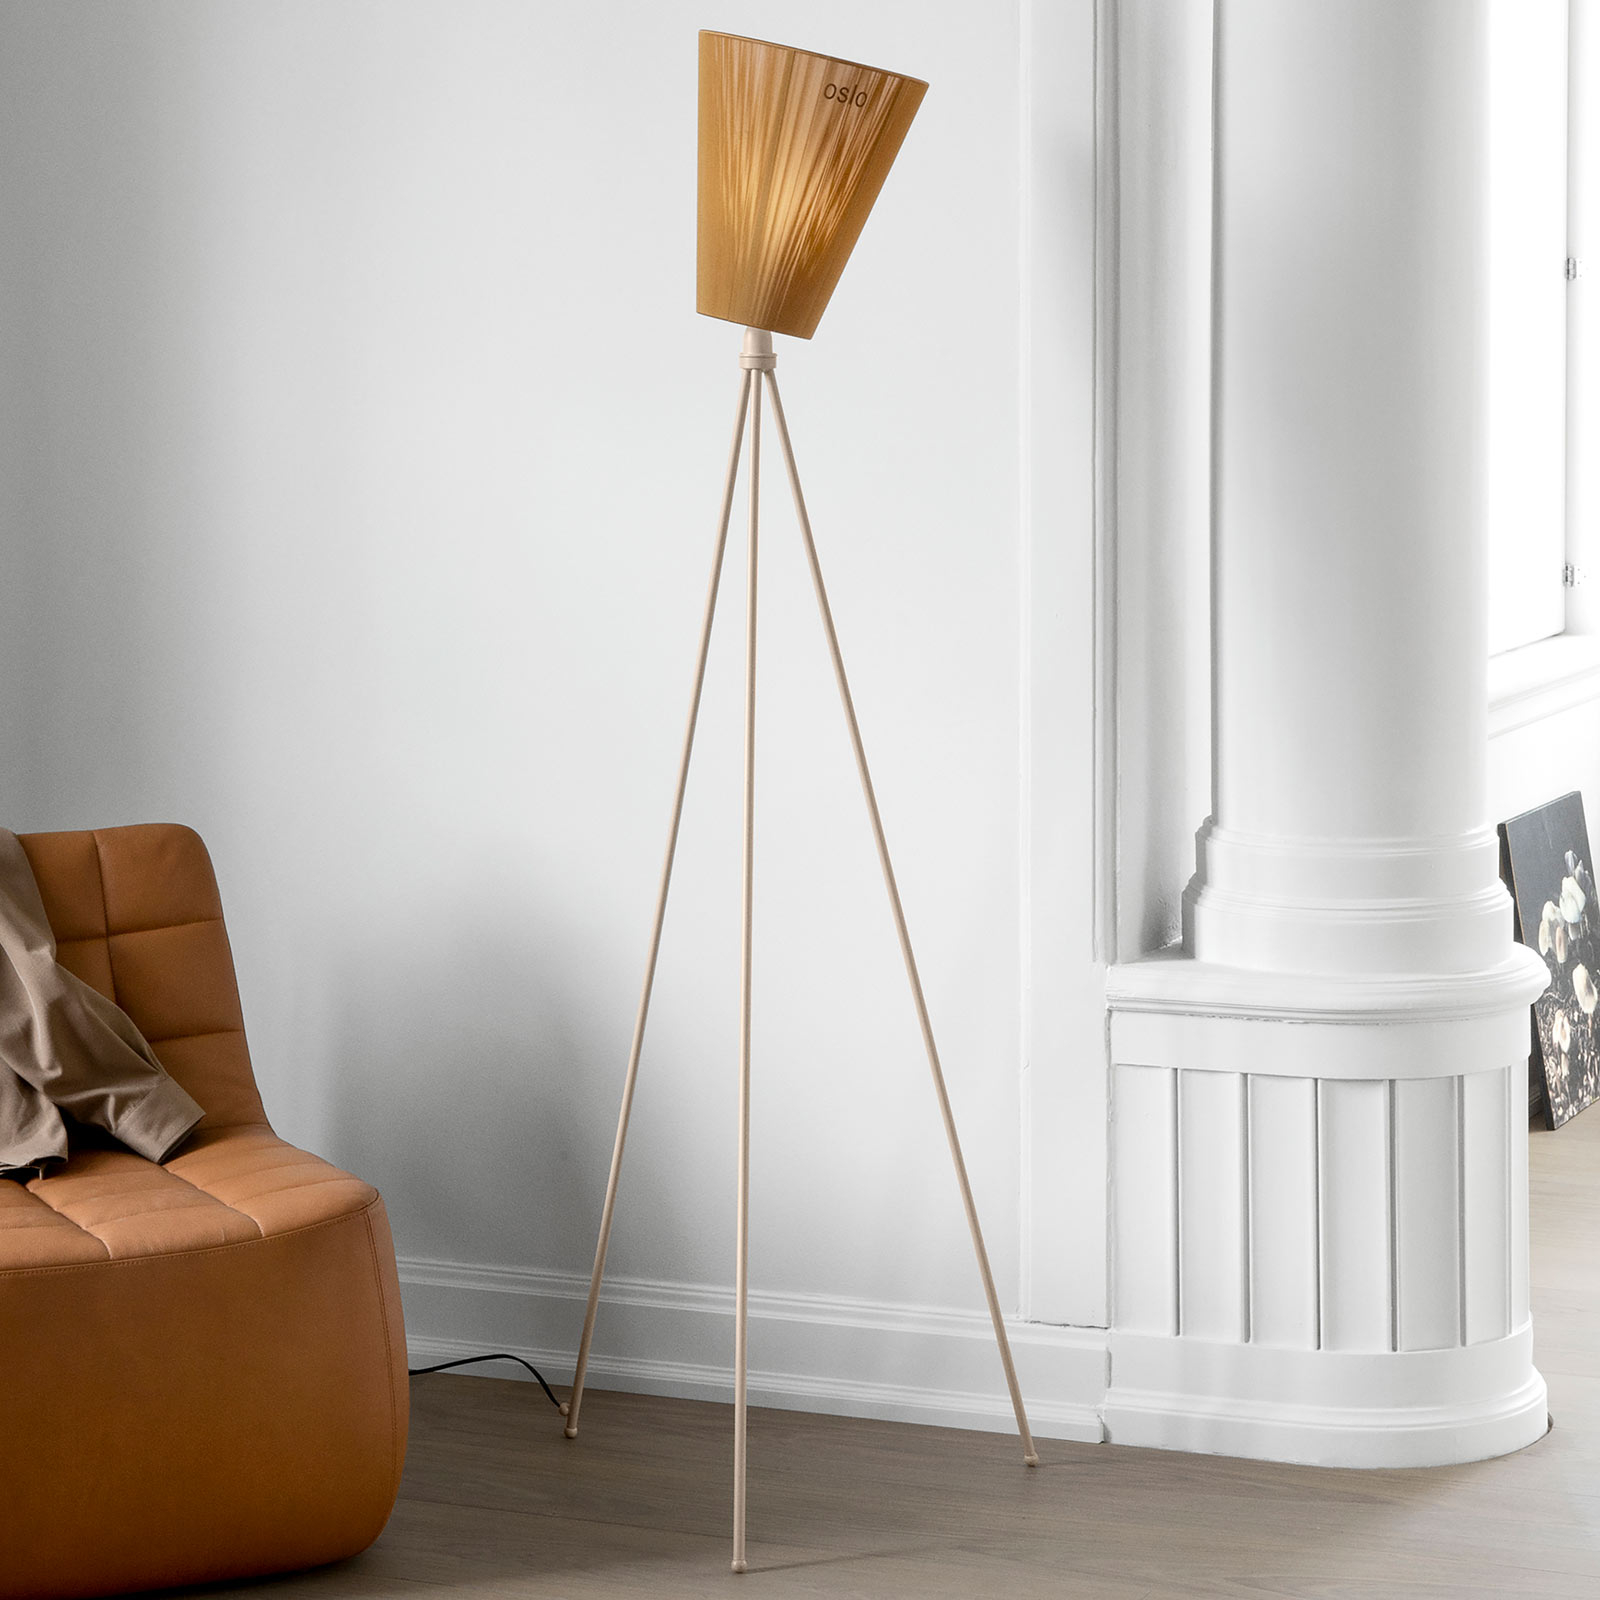 Northern Oslo Wood lampadaire caramel/beige